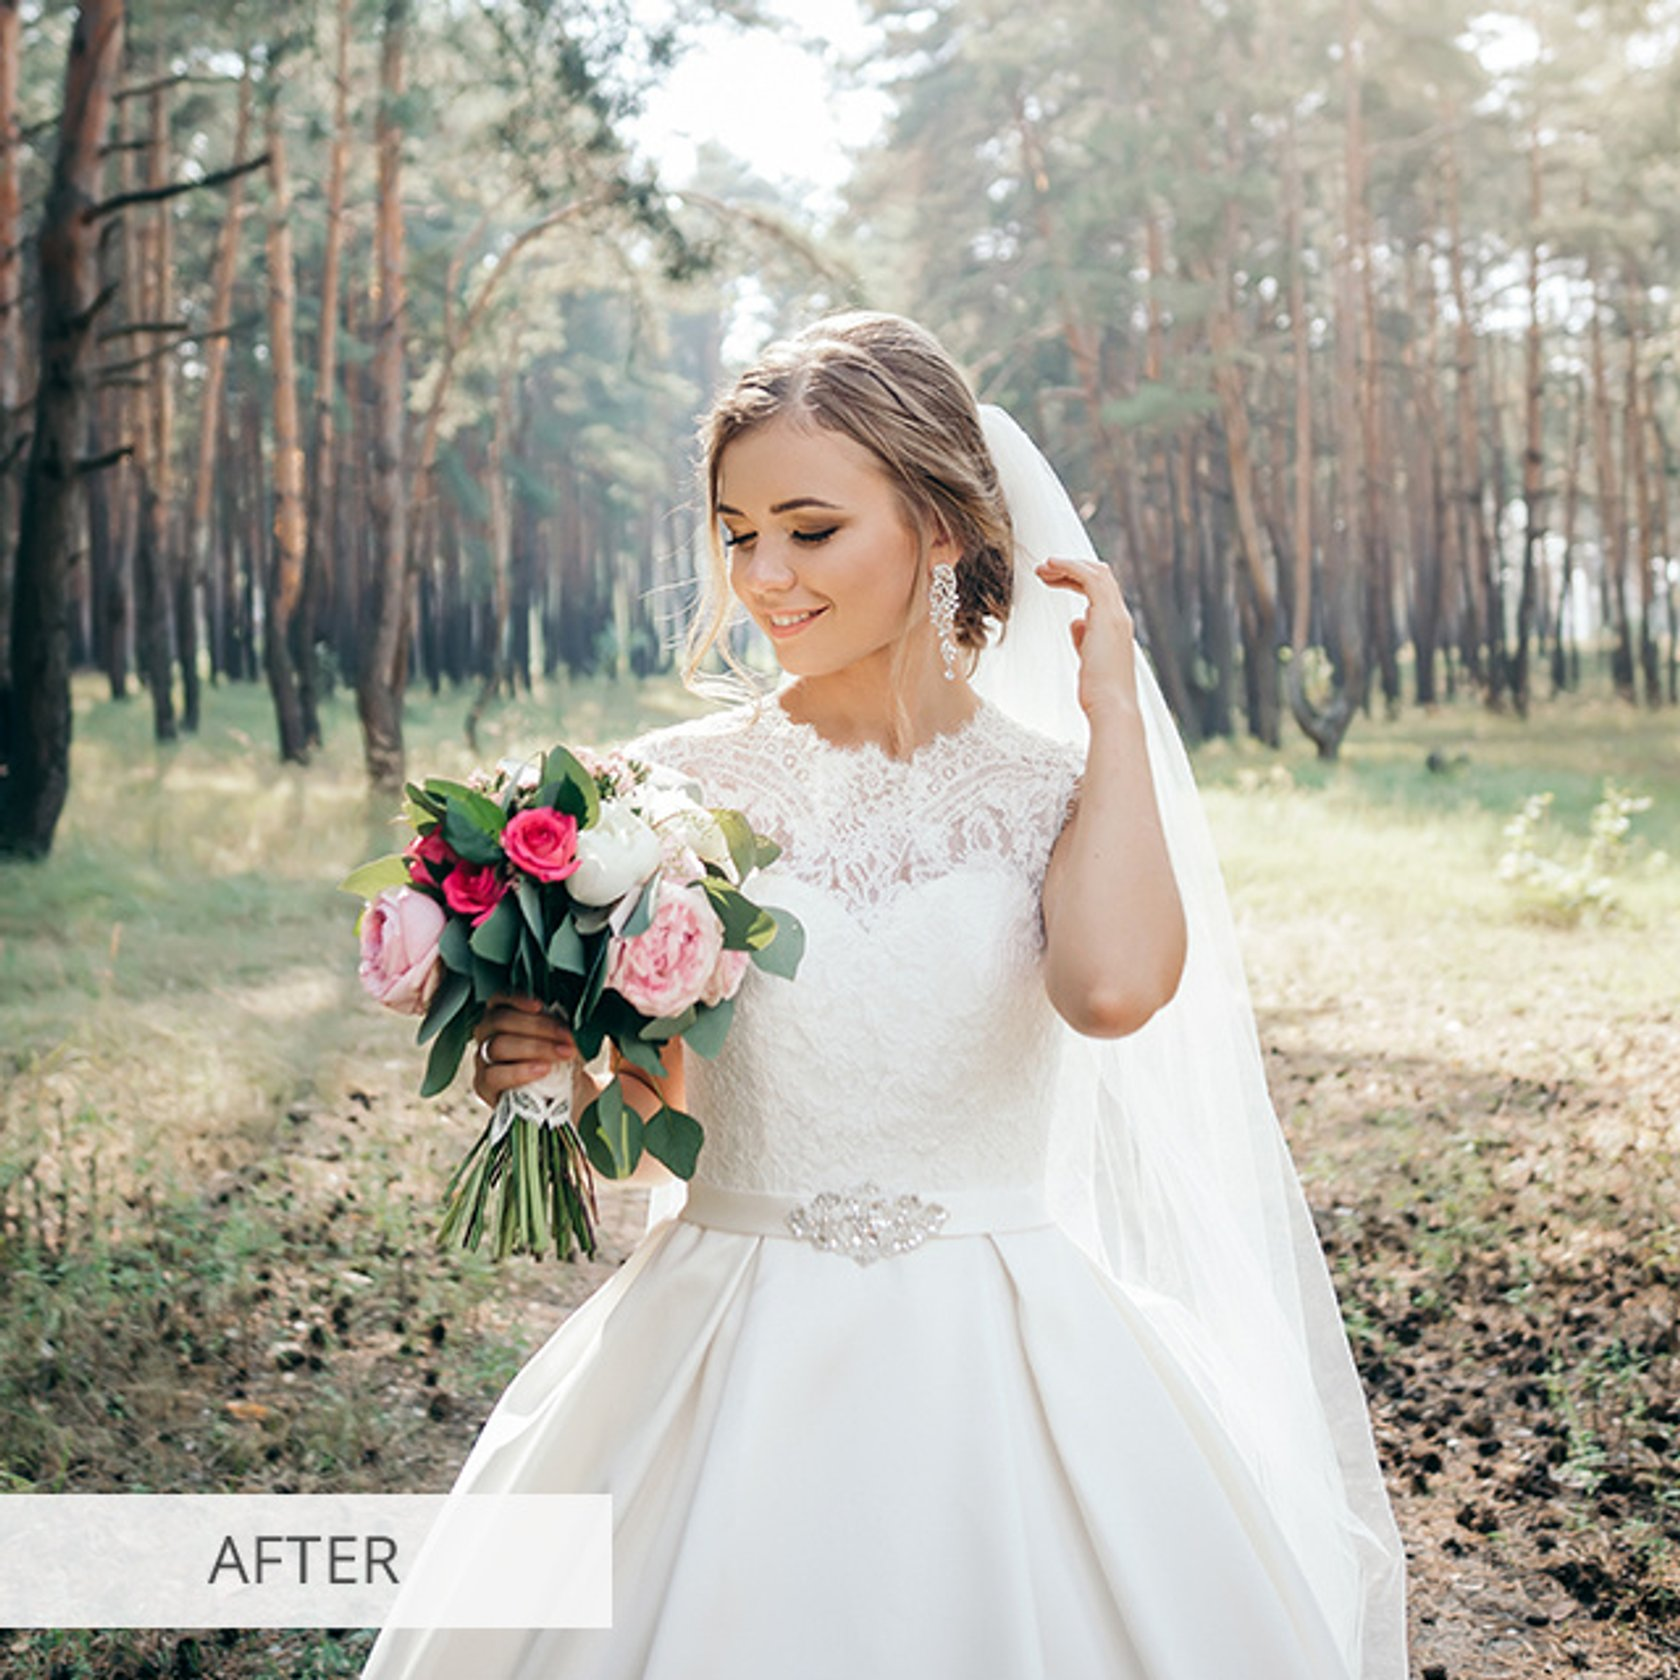 The 50 Best Lightroom Presets: Free and Paid   Skylum Blog